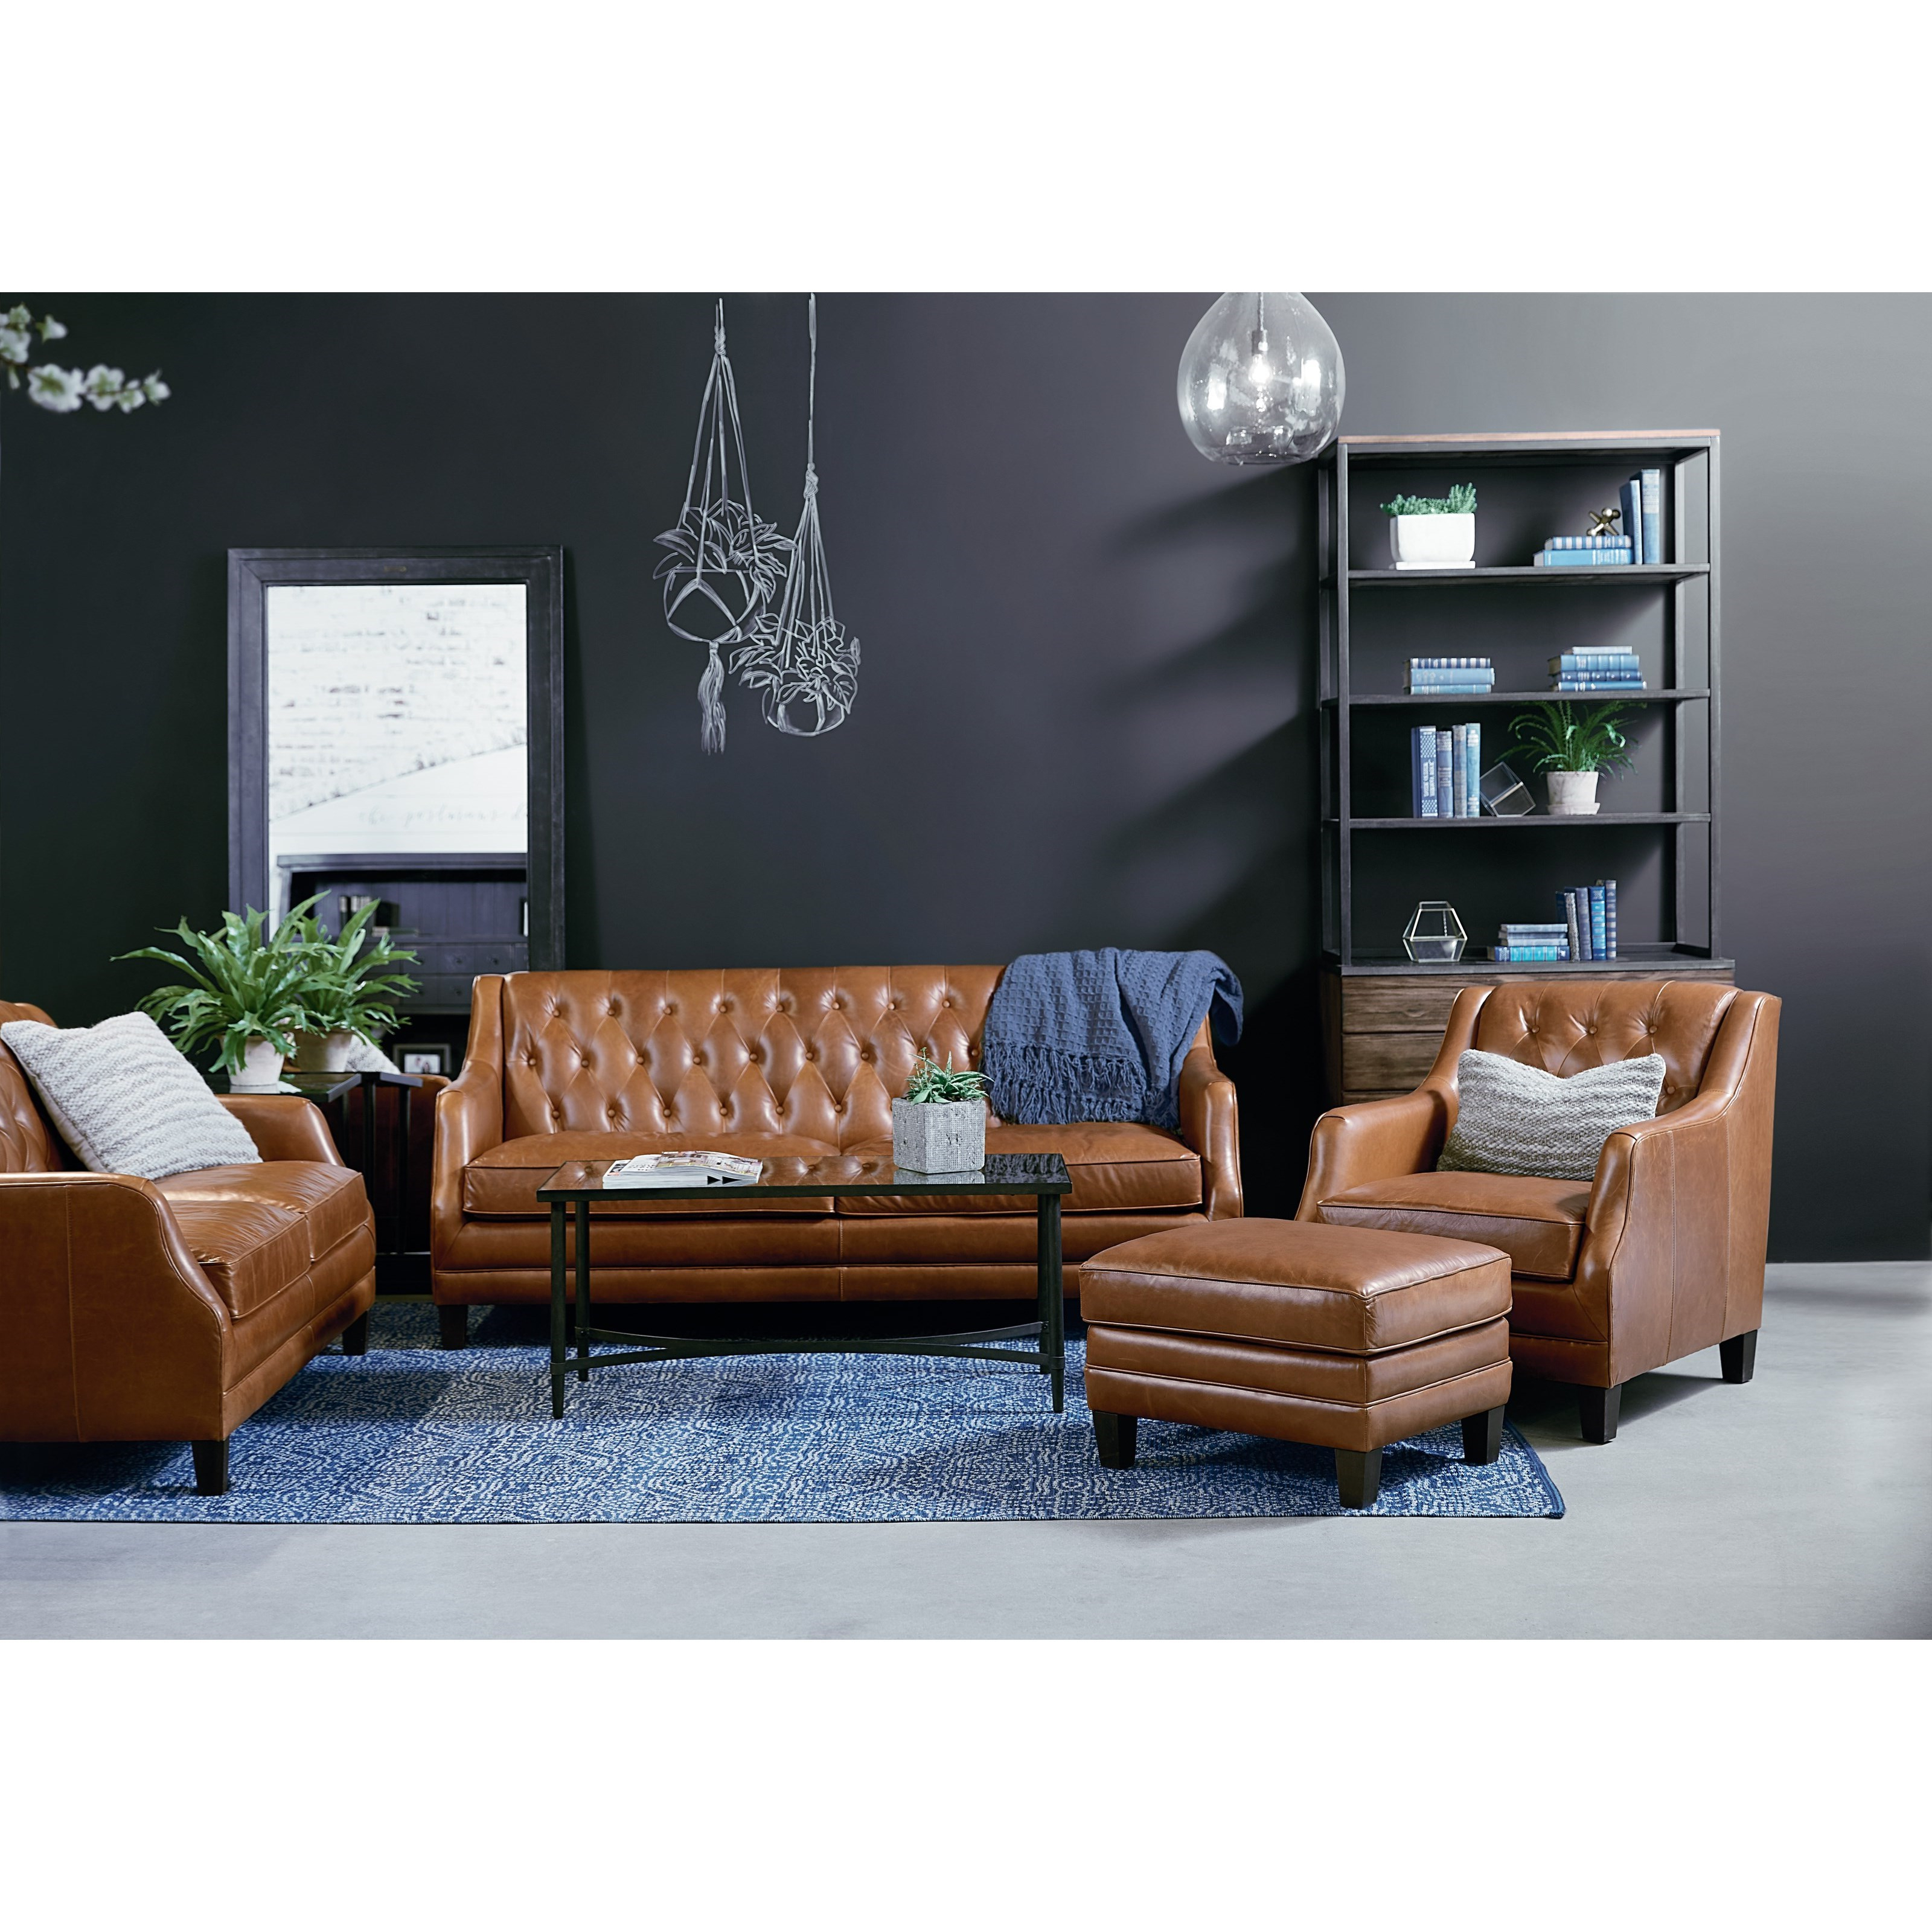 Magnolia Home Sectional Sofa (View 17 of 20)